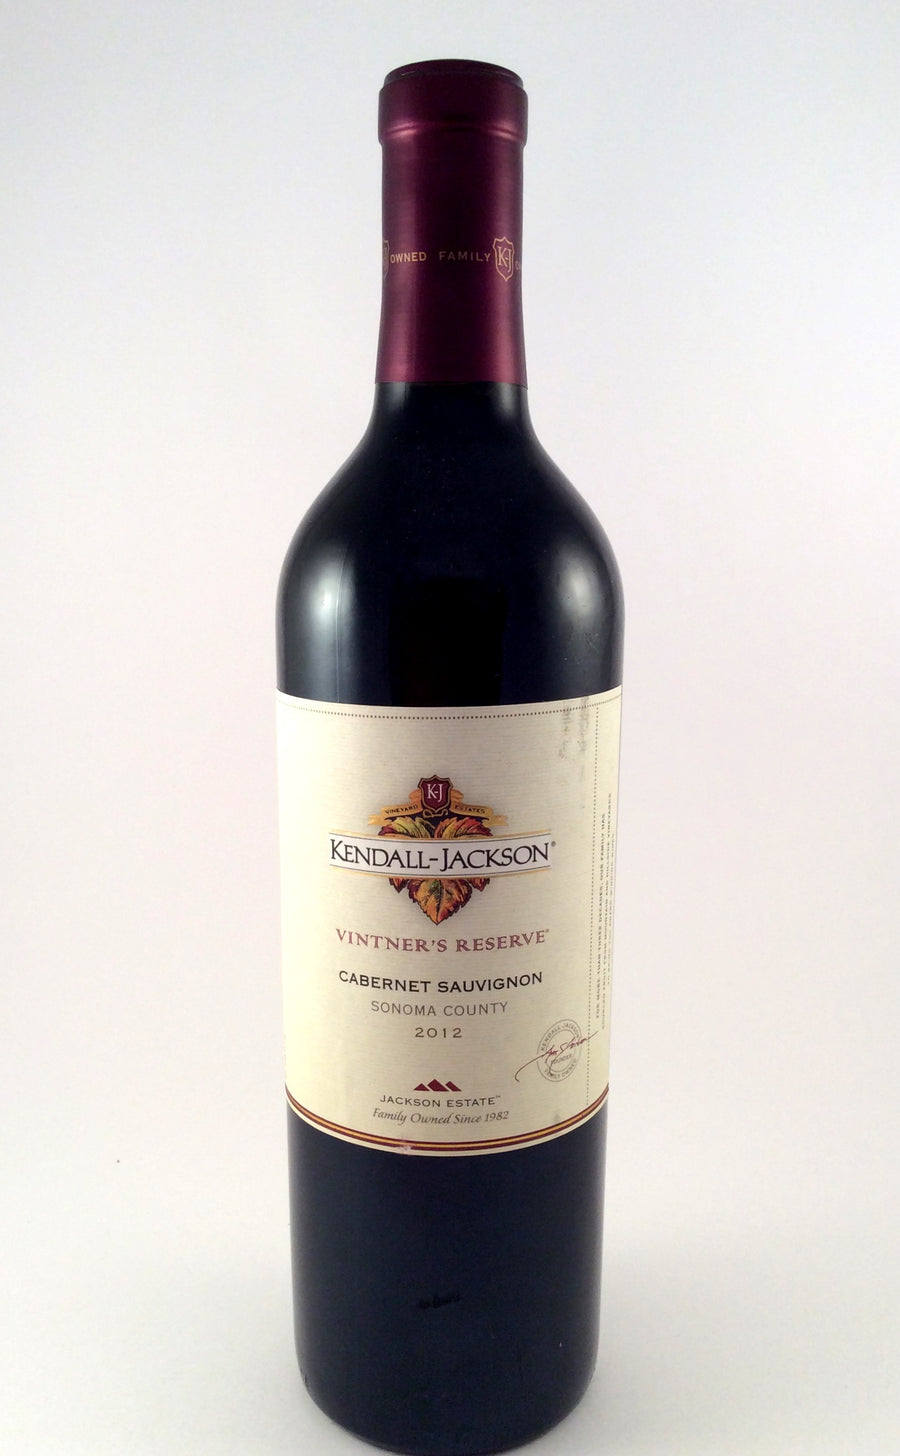 Wineseeker-Wine-Kendall-Jackson-Vintners-Reseve-Cabernet-Sauvignon